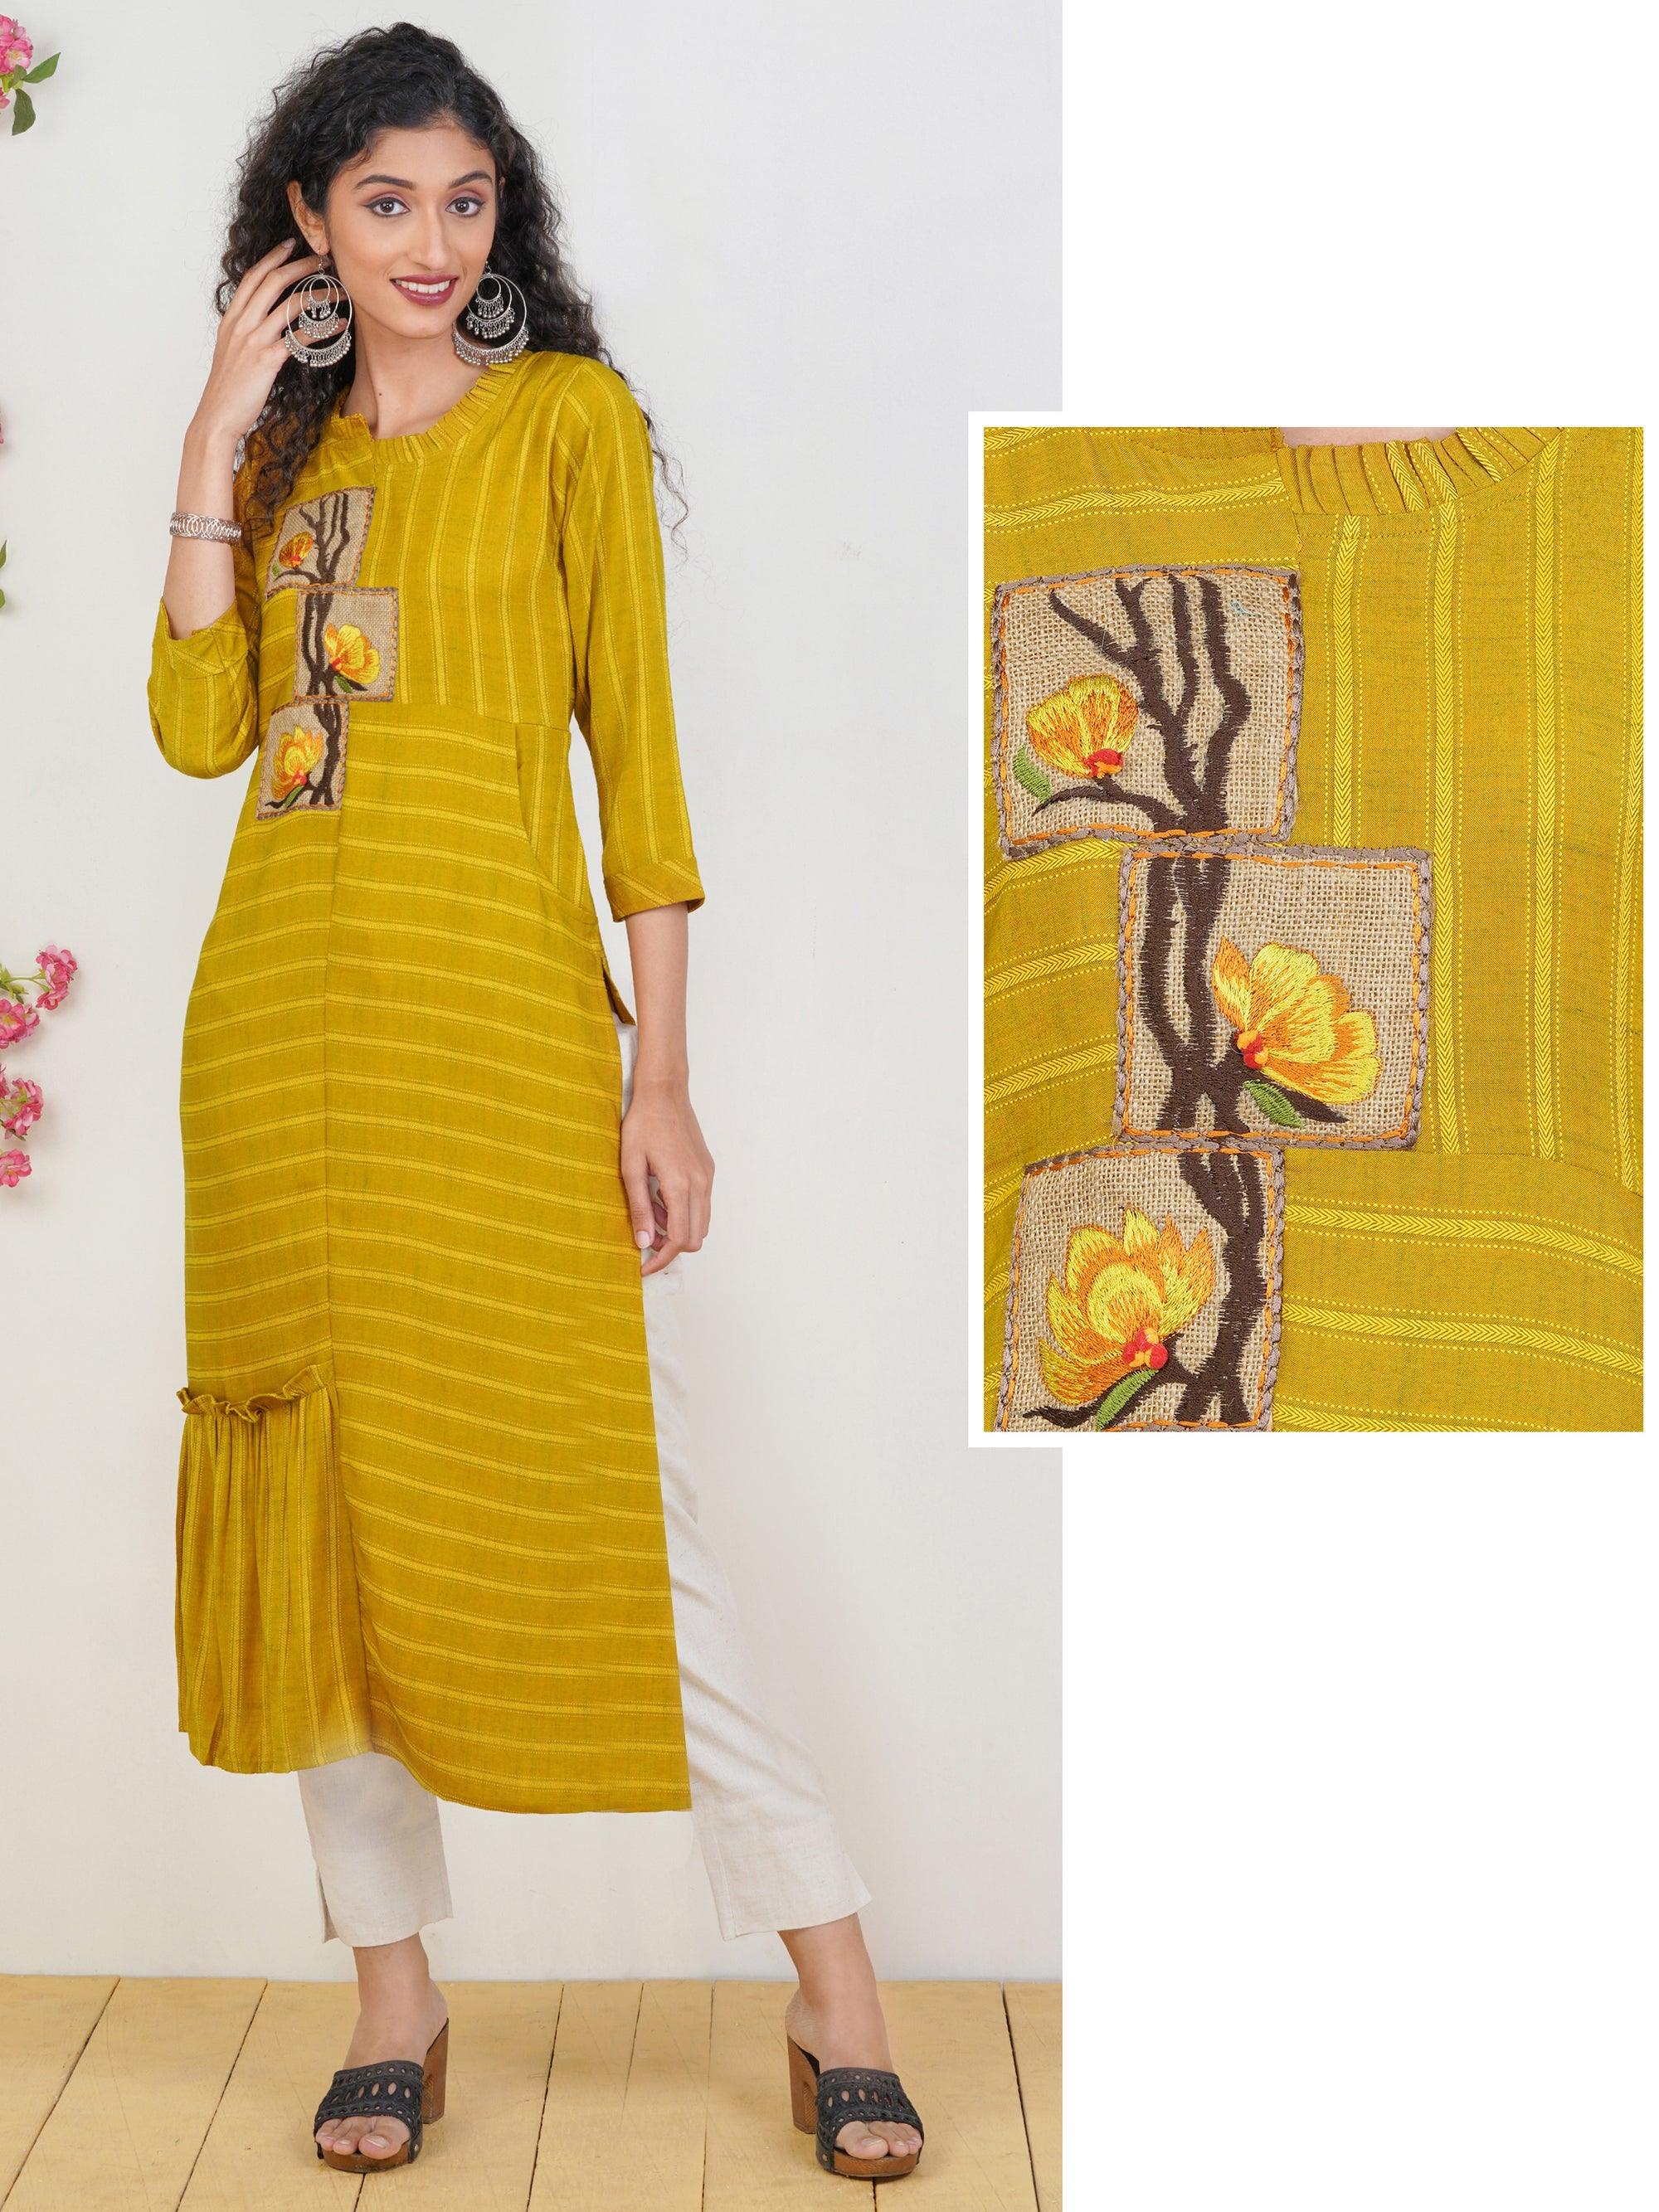 Floral Jute Embroidered Chevron Striped Kurti – Mustard